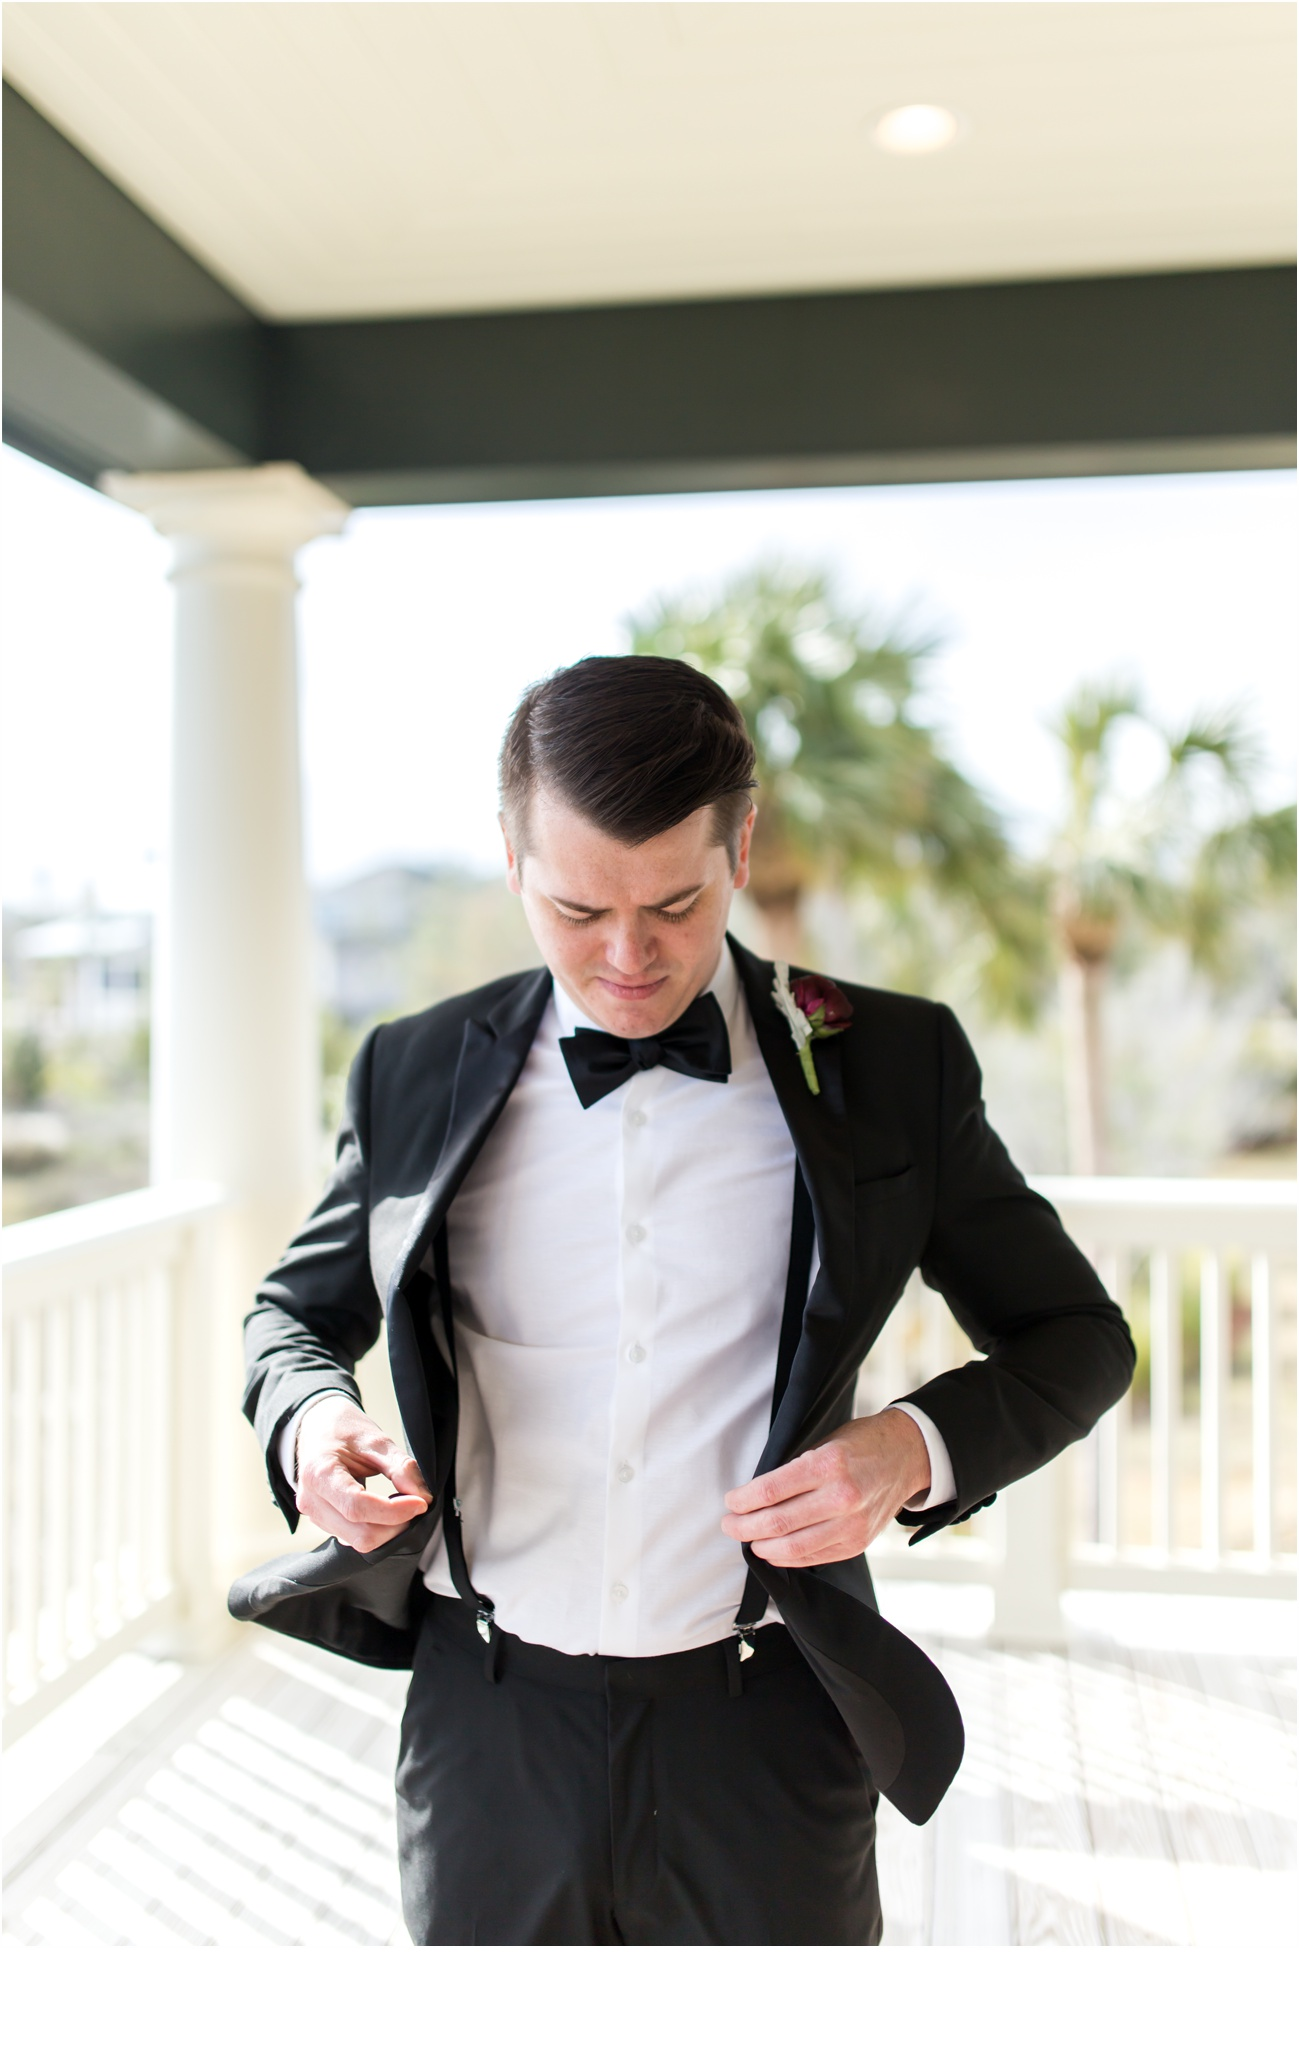 Rainey_Gregg_Photography_St._Simons_Island_Georgia_California_Wedding_Portrait_Photography_0780.jpg